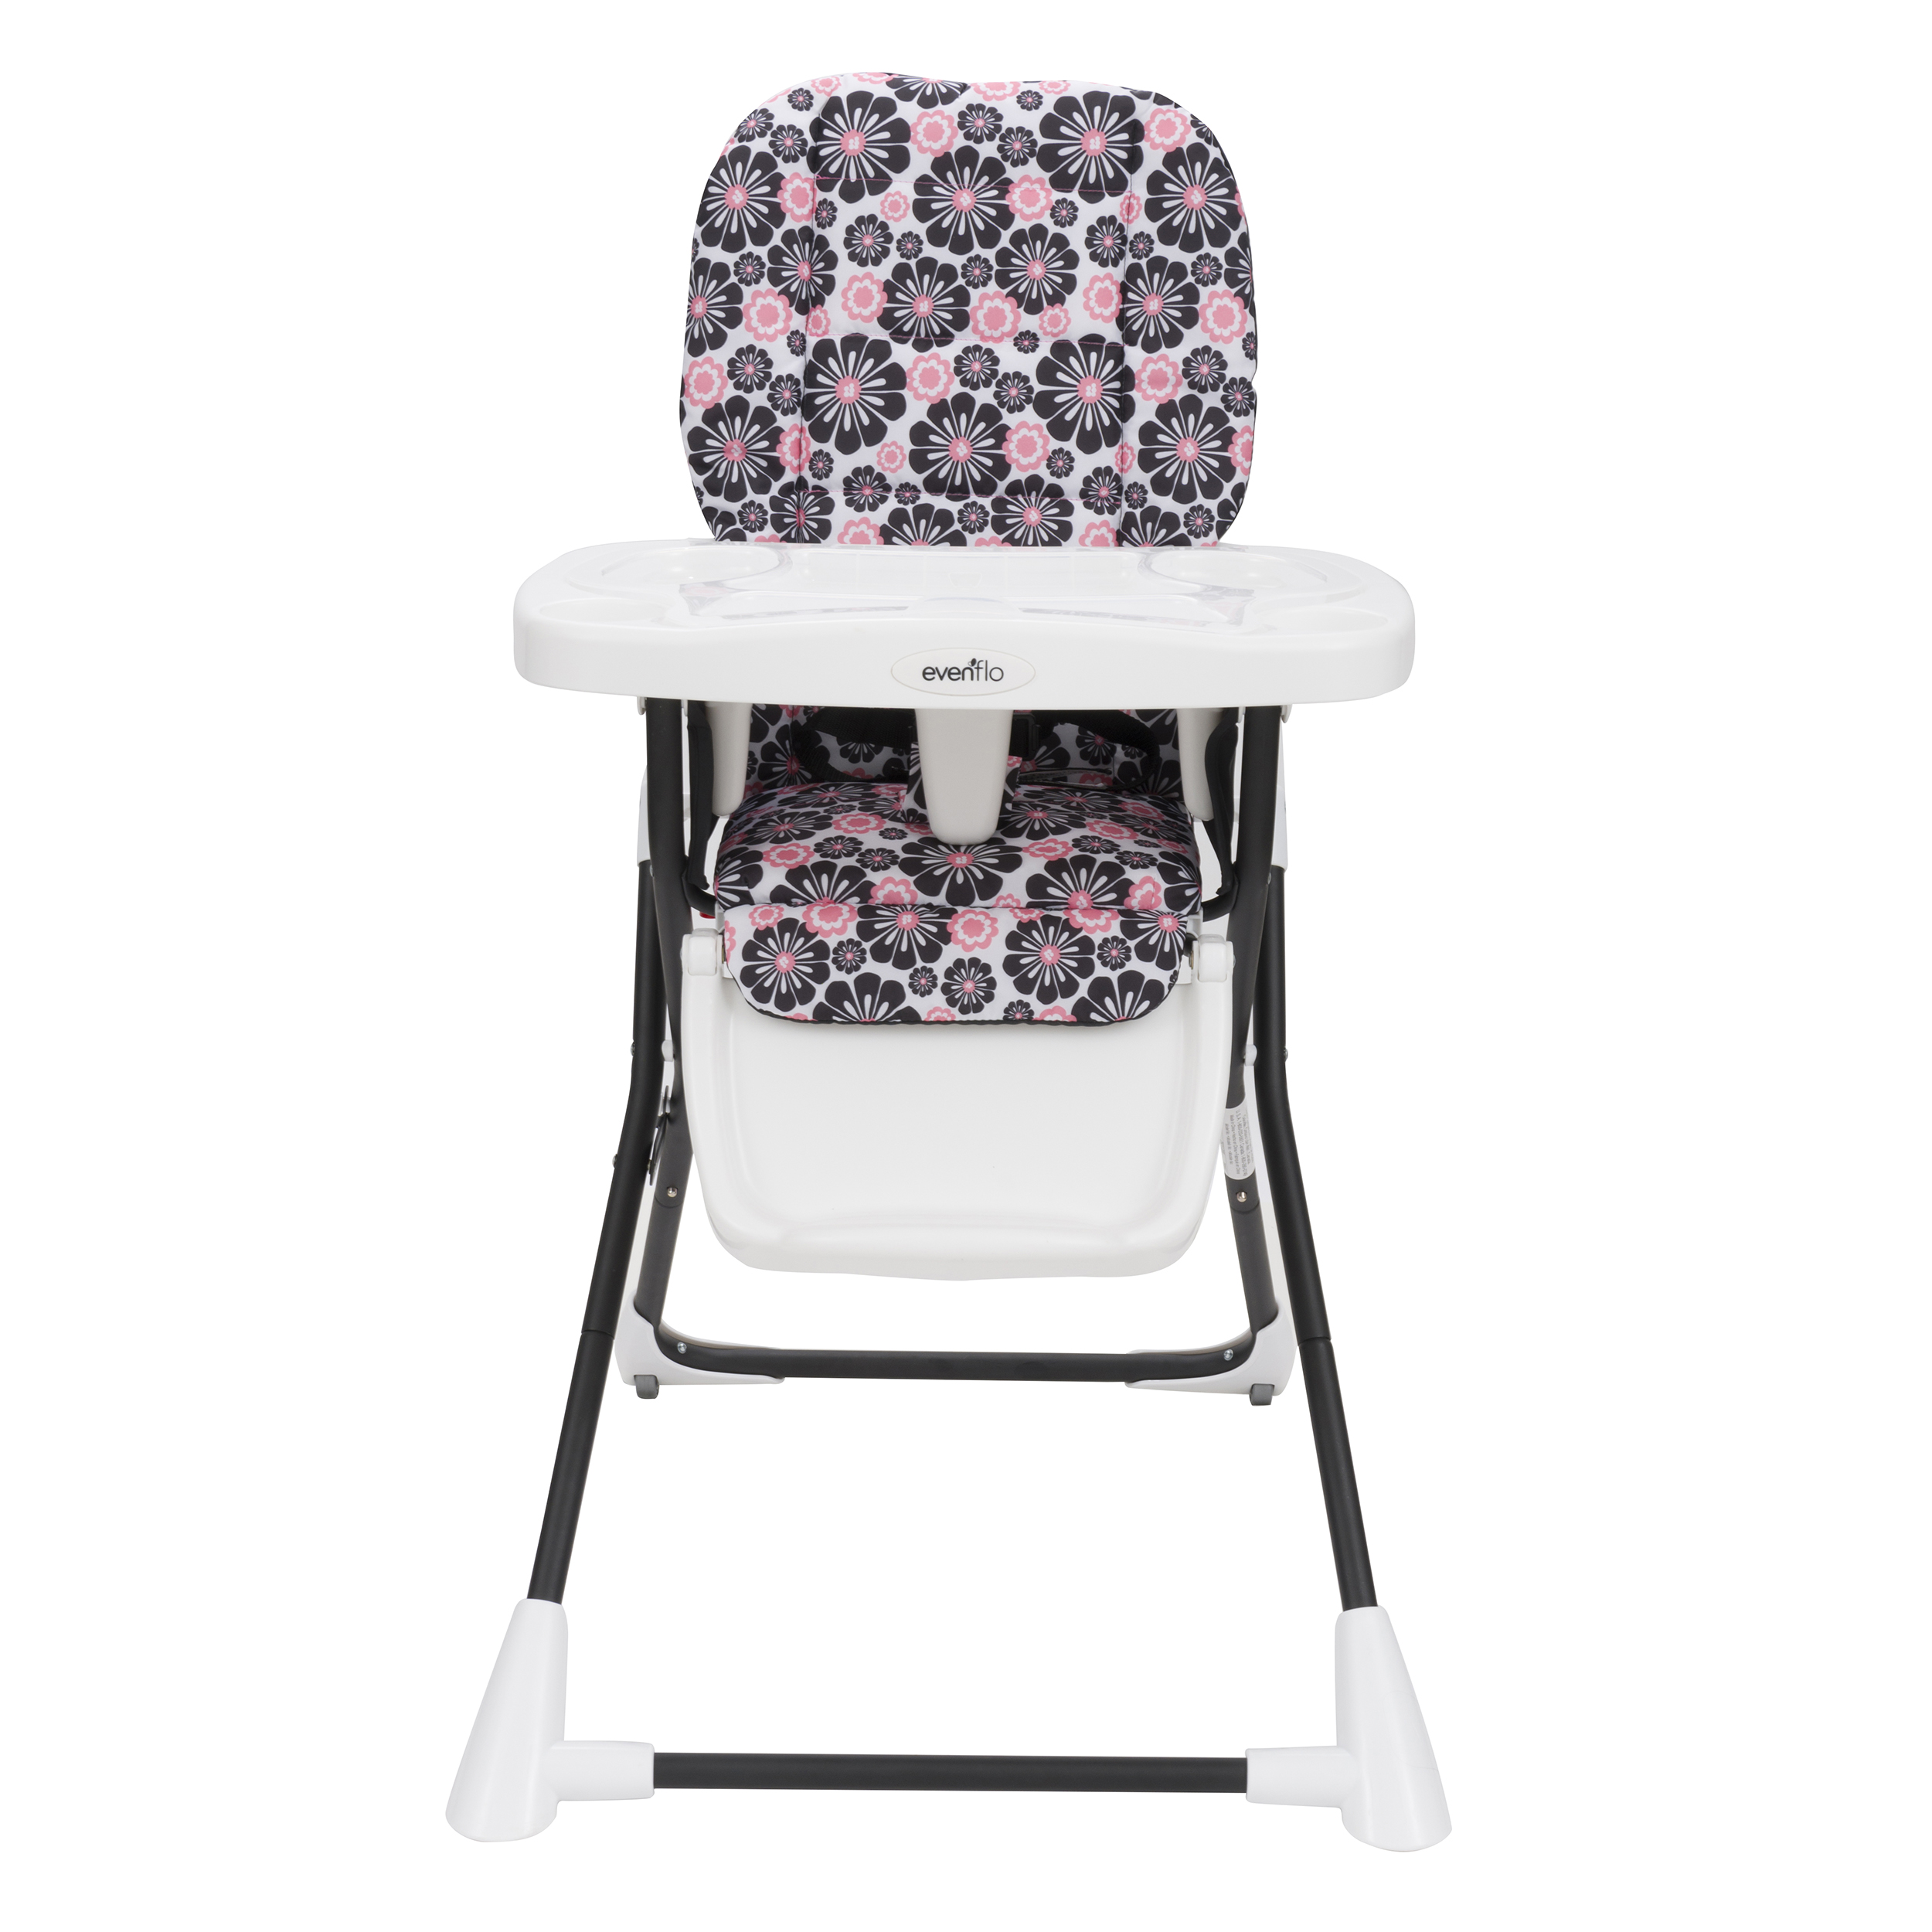 compact high chair little tikes desk with light and evenflo fold penelope baby